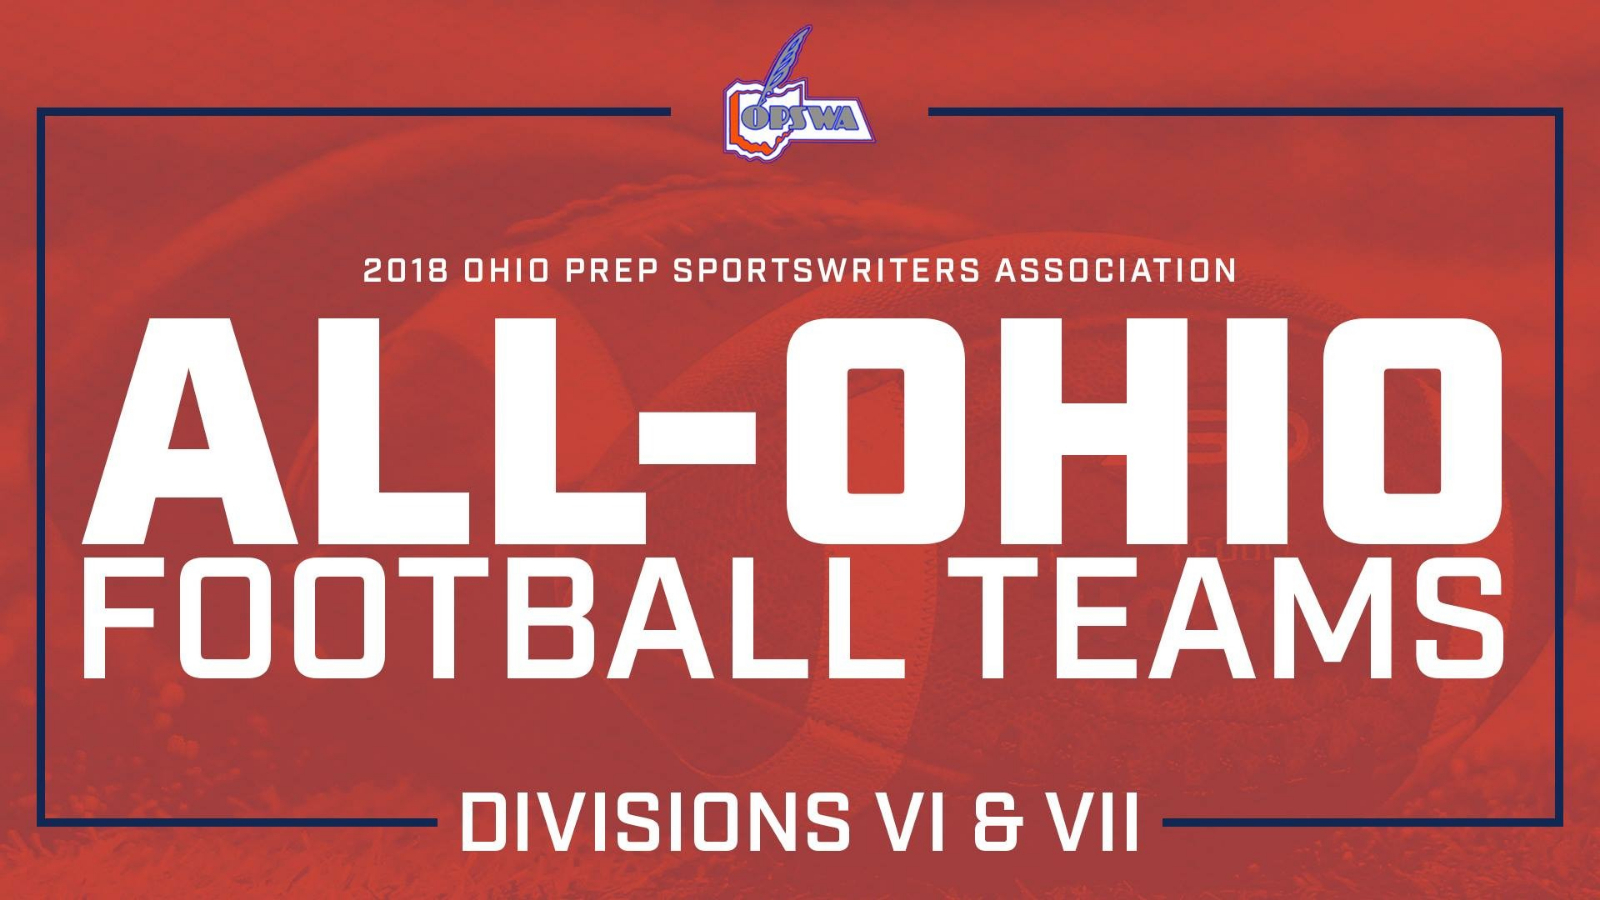 Hall and Collins earn ALL-OHIO Honors